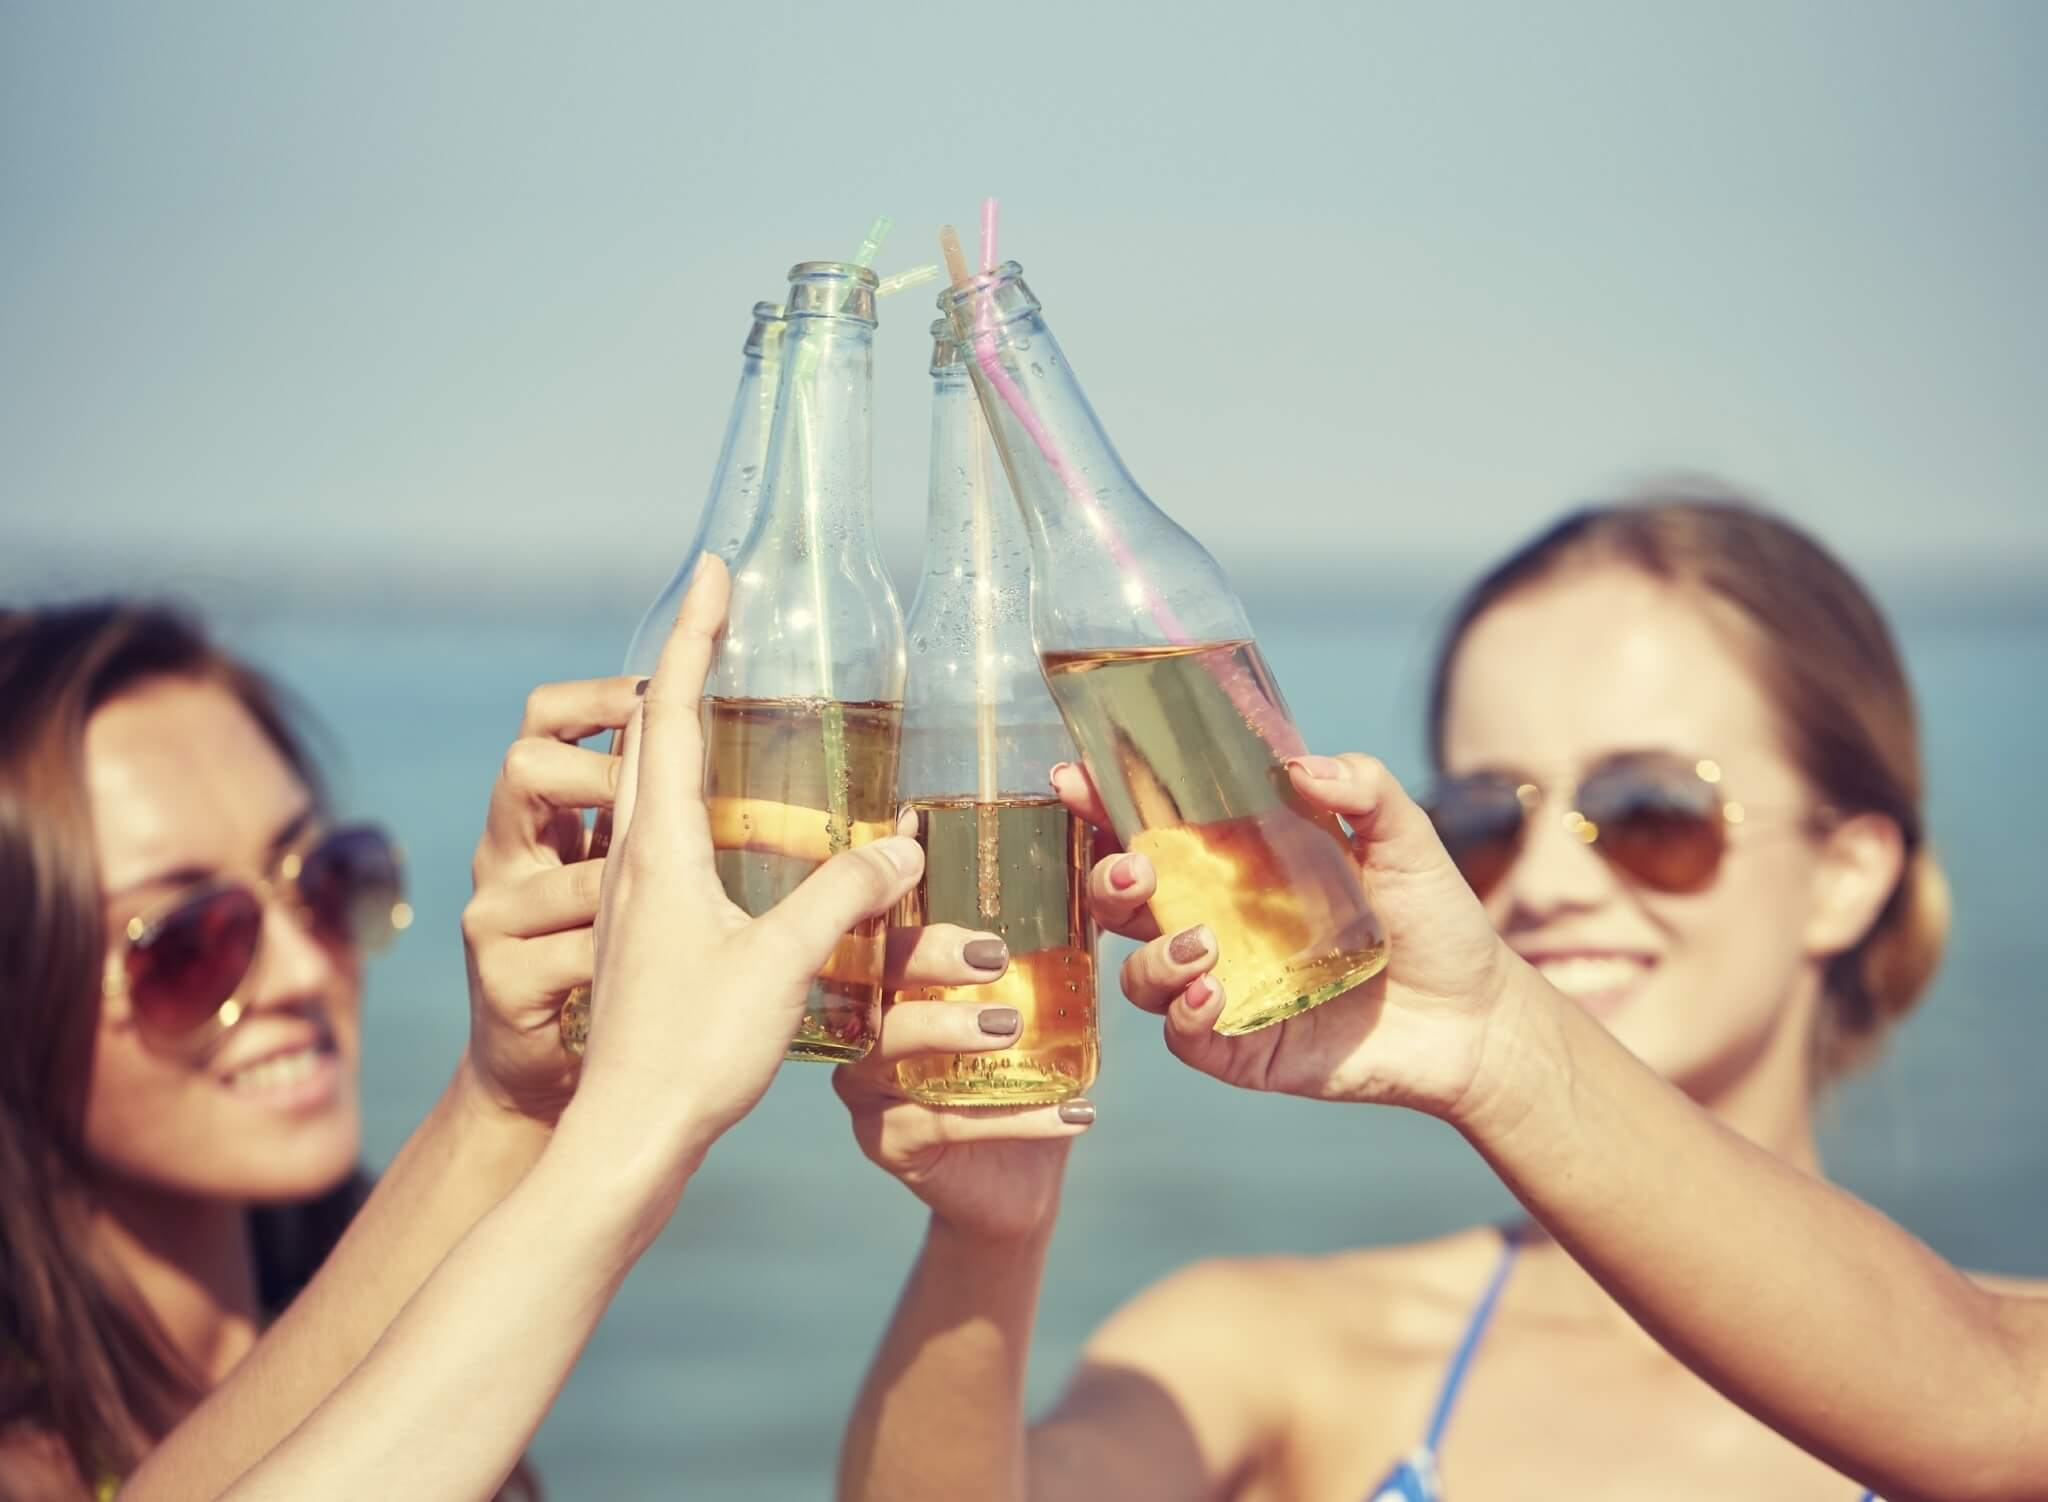 close-up-of-happy-young-women-with-drinks-on-beach-000069864029_Large-2.jpg.jpeg